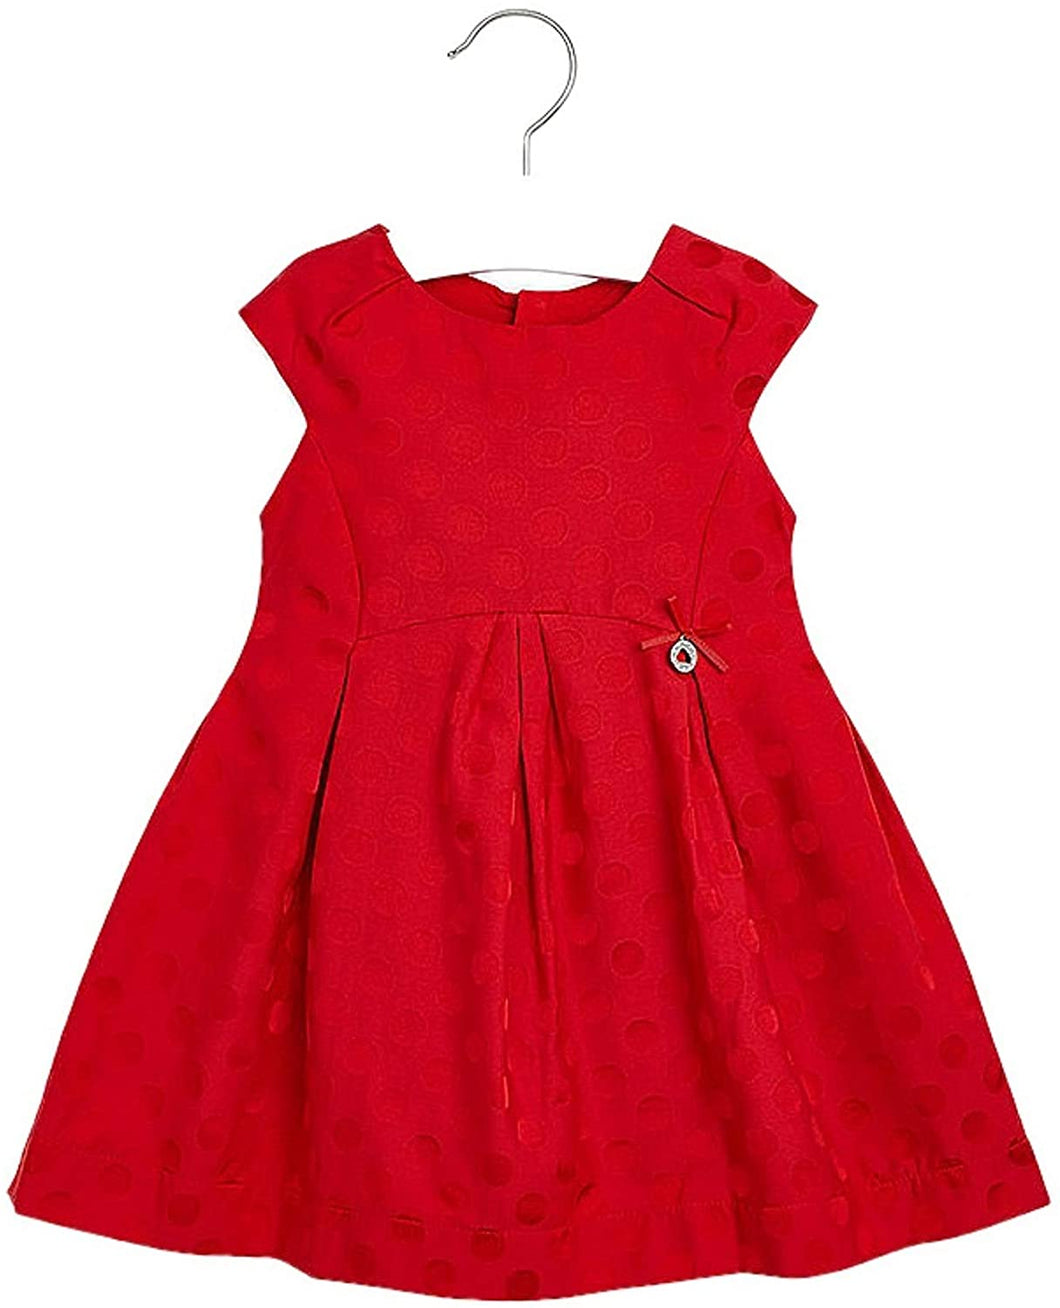 Jacquard Dots Dress - Size 2T, 3T